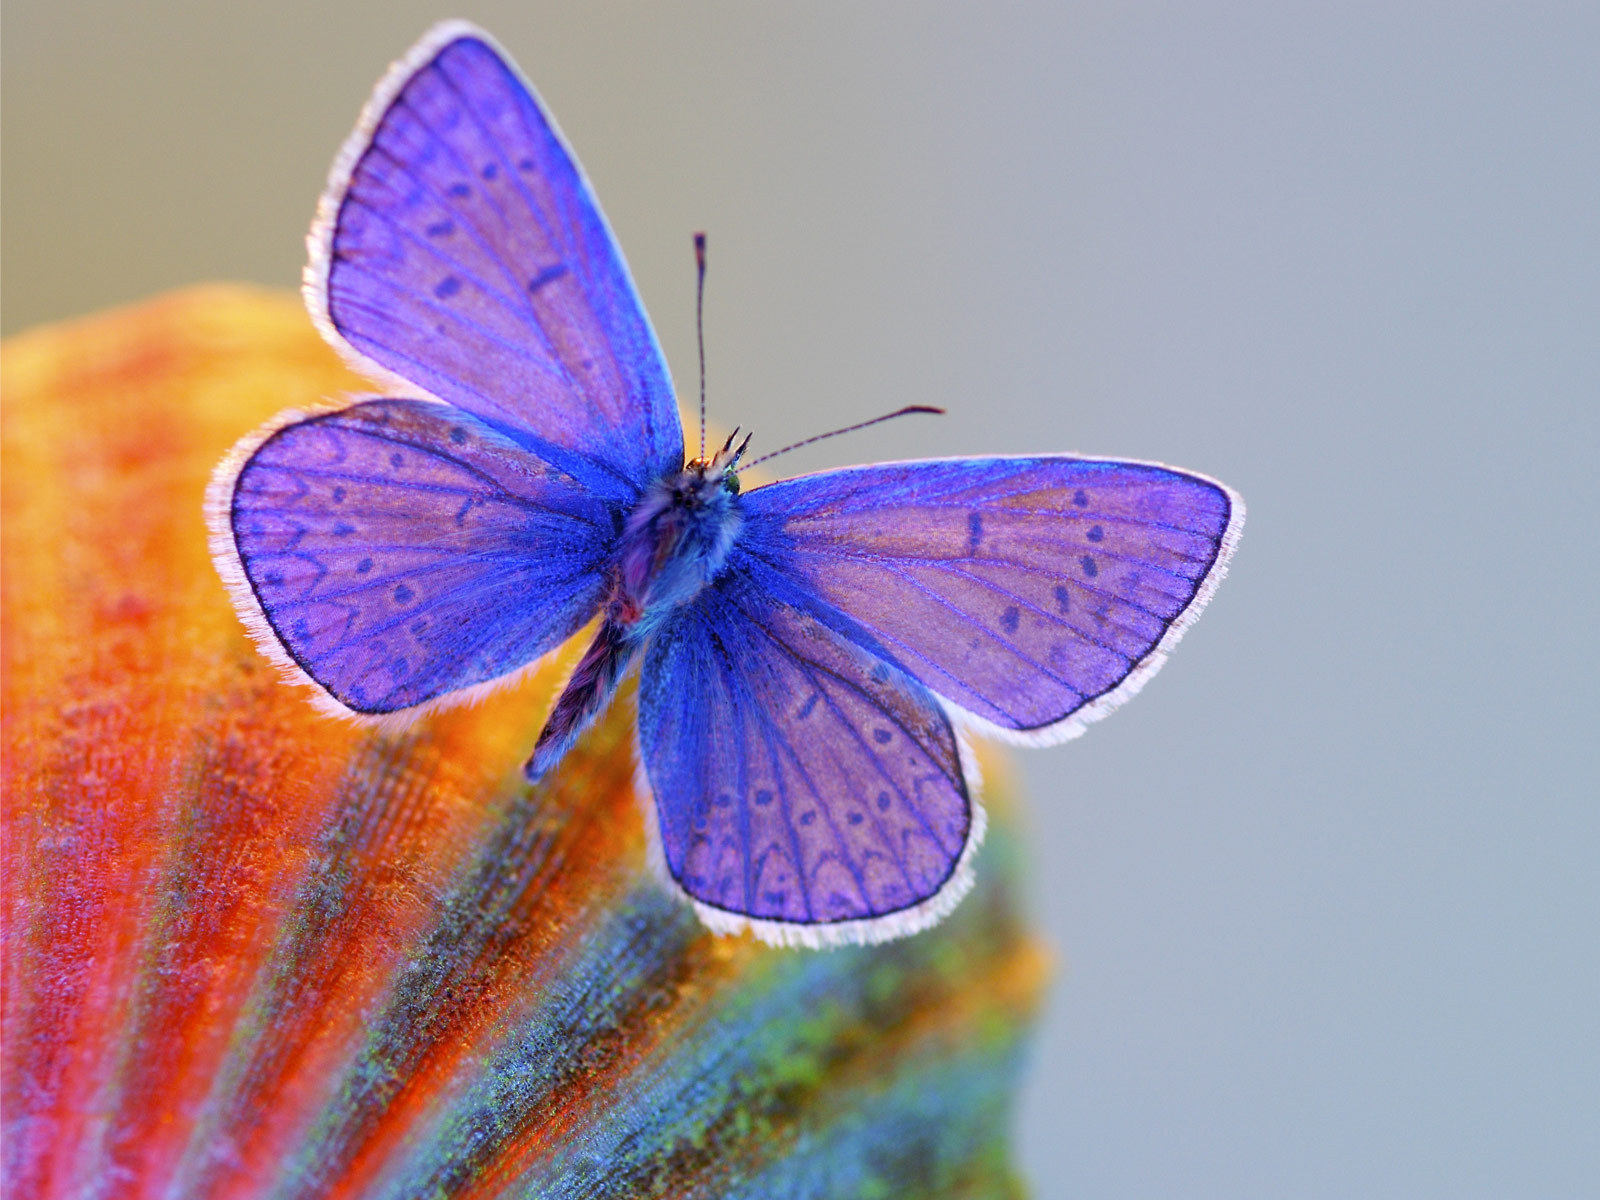 WnP: Wallpapers amp; Pictures: Beautiful amp; Colorful Butterfly